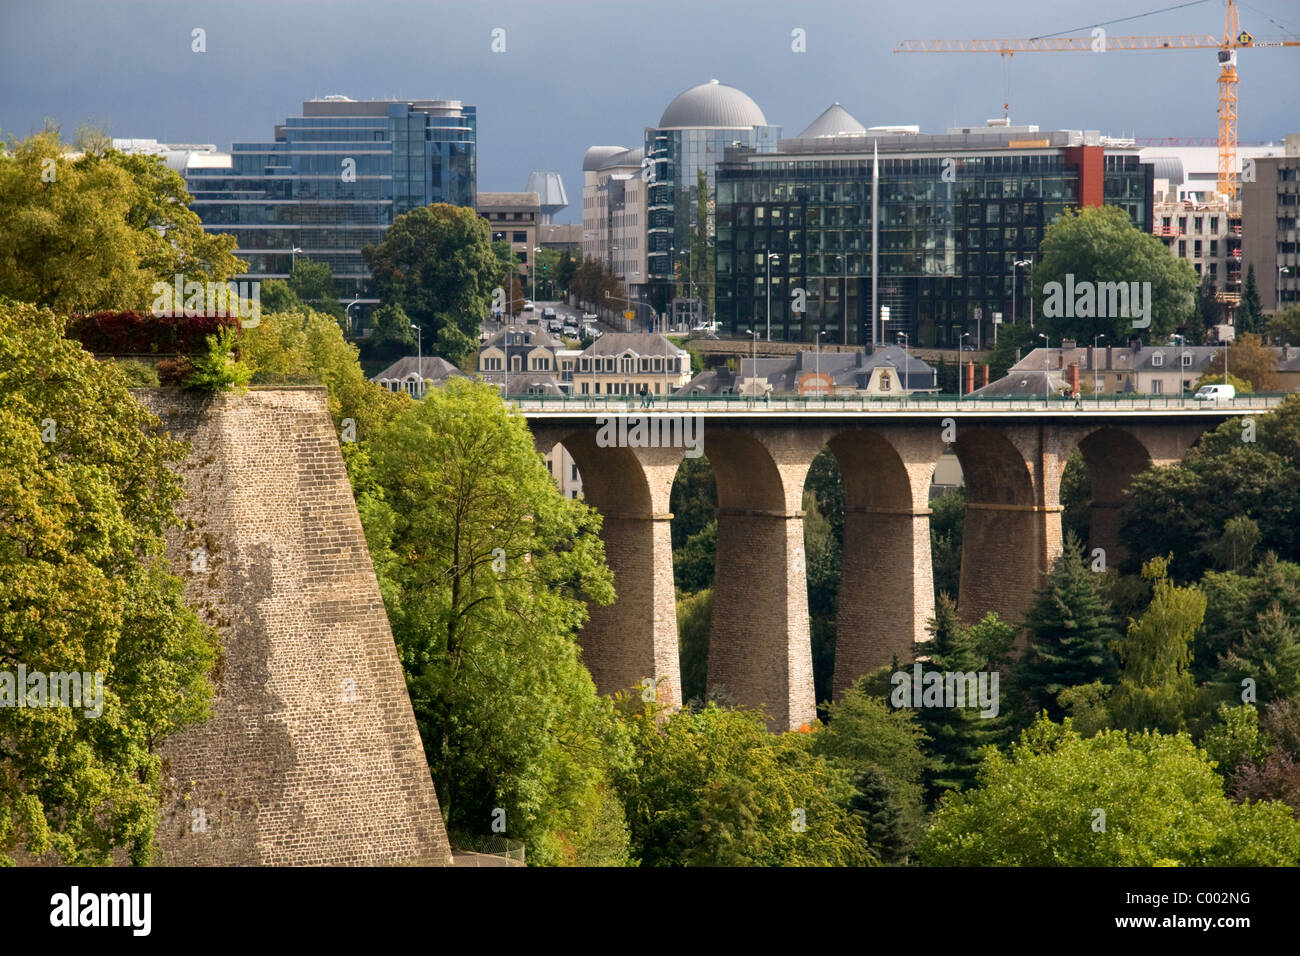 The passerelle viaduct in luxembourg city luxembourg stock photo the passerelle viaduct in luxembourg city luxembourg thecheapjerseys Images